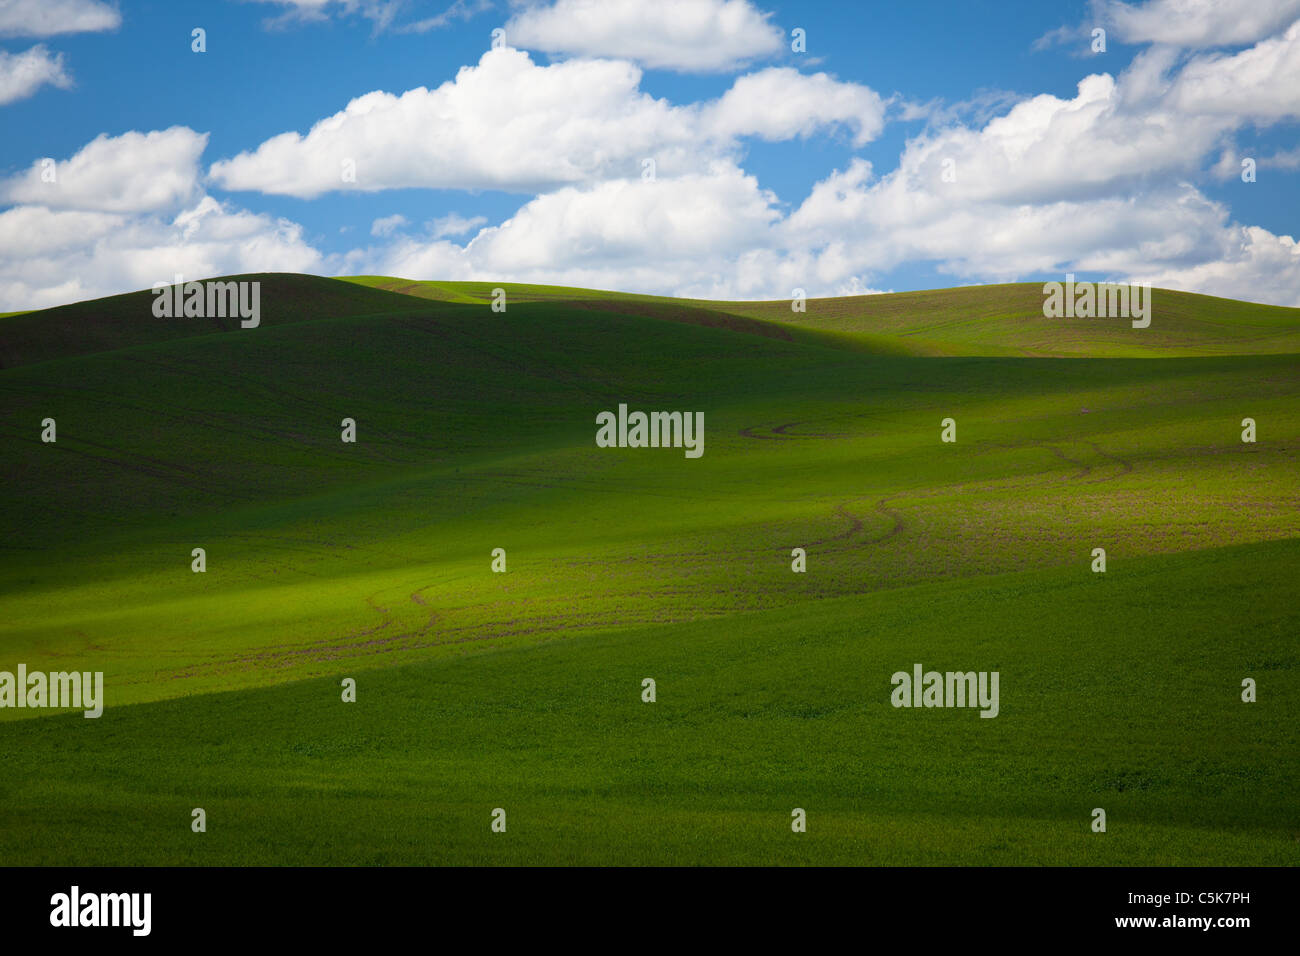 Landscape in the Palouse agricultural area of eastern Washington state, USA - Stock Image